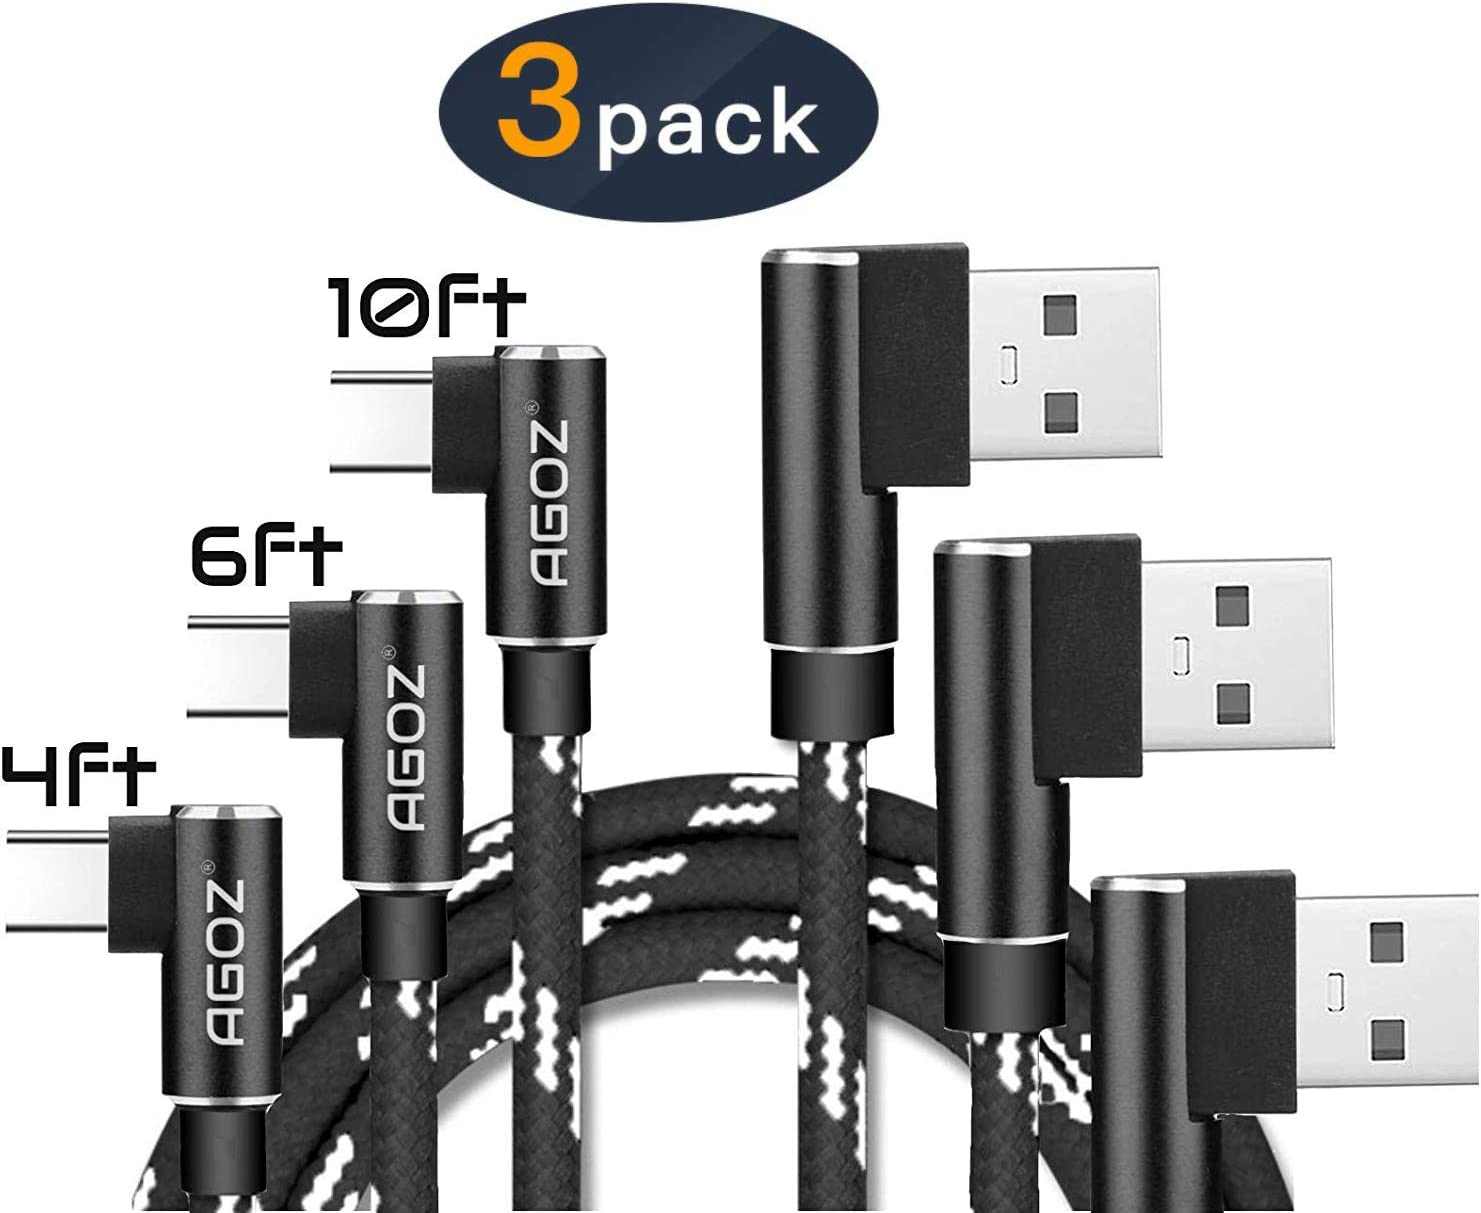 Agoz Black 3pack USB C Right Angle Cable, FAST Charger 4/6/10ft 90 Degree Type C For Samsung Galaxy S10 Plus S10e Note 8 9 S9 S8 A10e, LG Stylo 4 G8 G7 V40, Moto Z4 Z3 Z2, Pixel 3A XL,OnePlus 6T 7 PRO